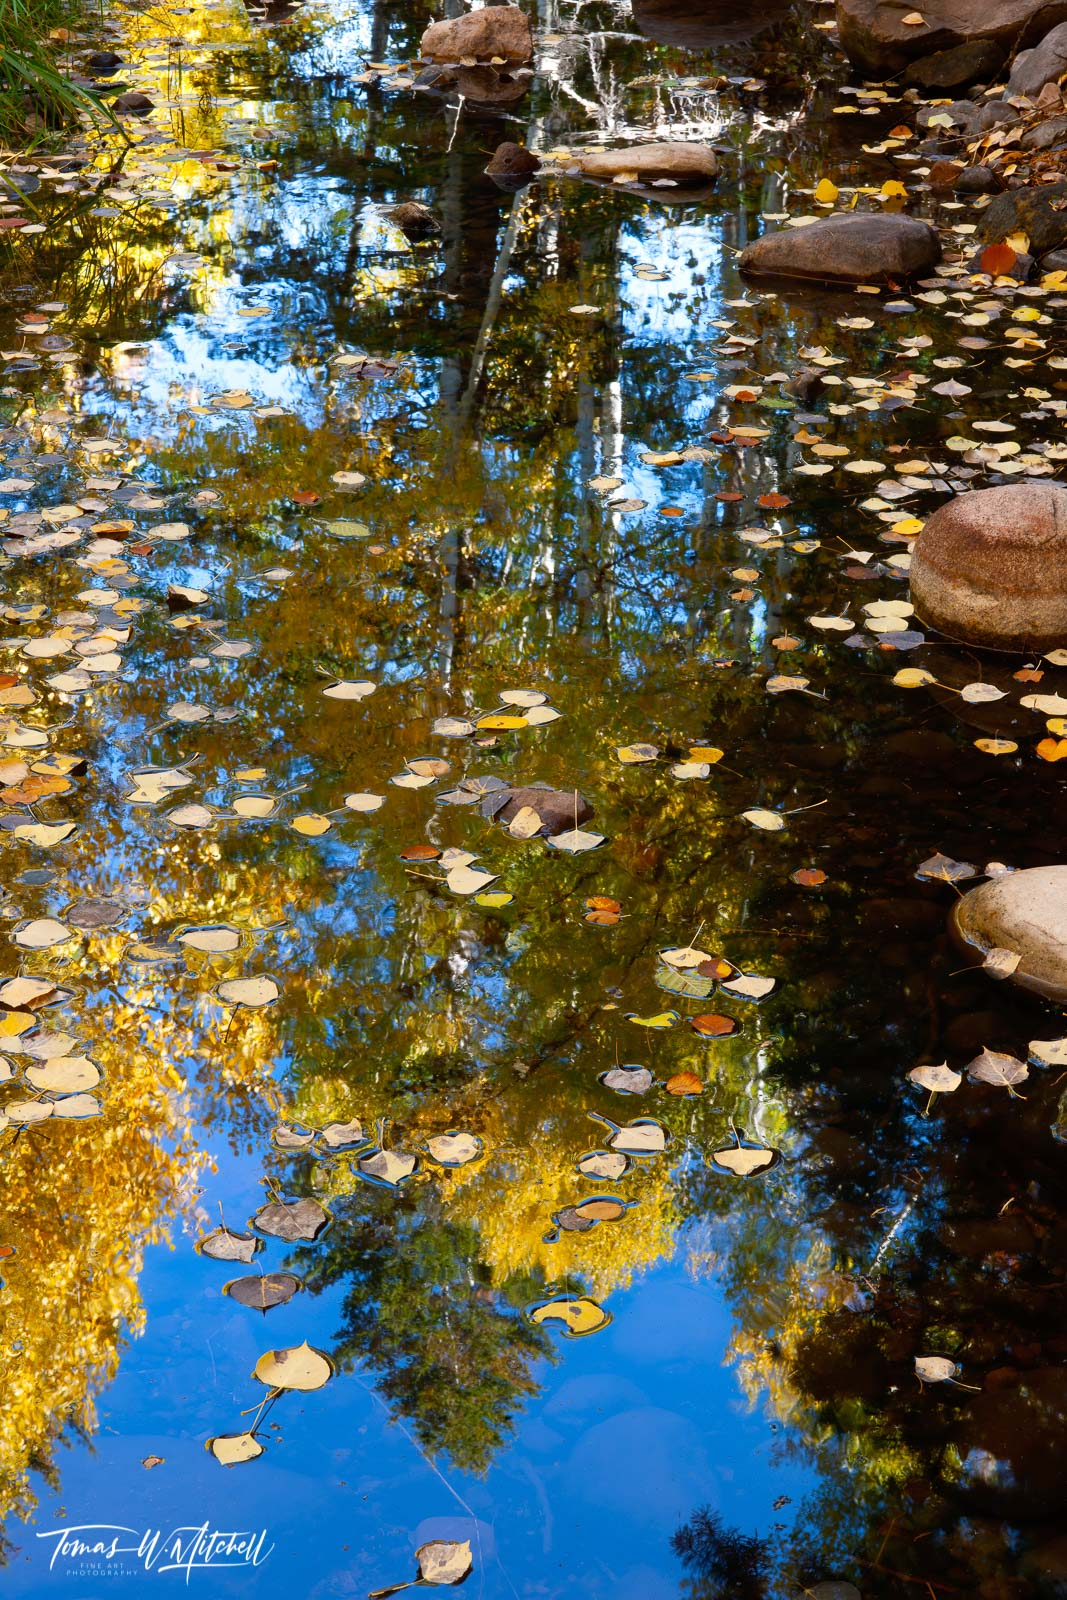 limited edition, fine art, prints, oakley, utah, abstract, stream, autumn, quaking aspens, leaves, water, blue sky, forest, reflecting, photograph, photo